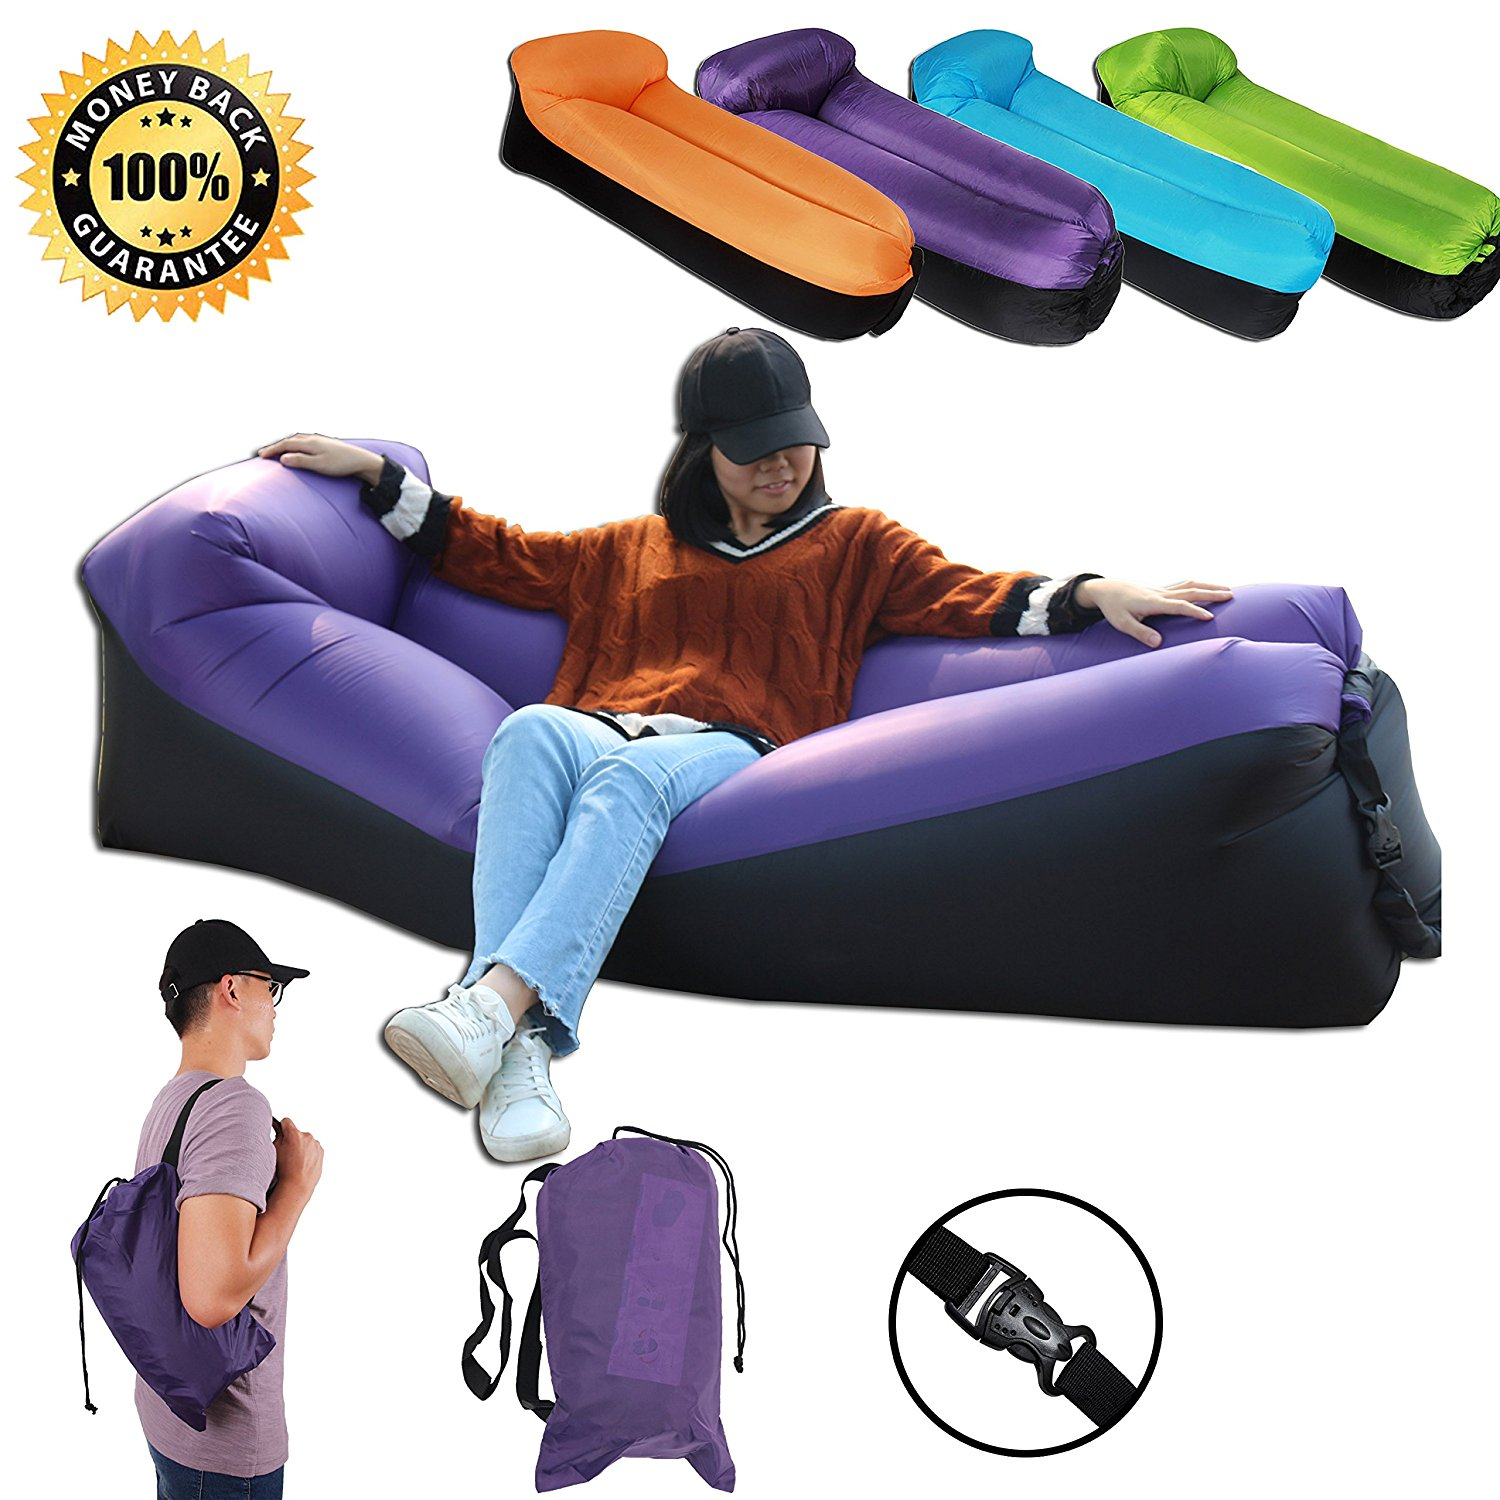 Cheap Euro Lounger Sofa Find Euro Lounger Sofa Deals On Line At